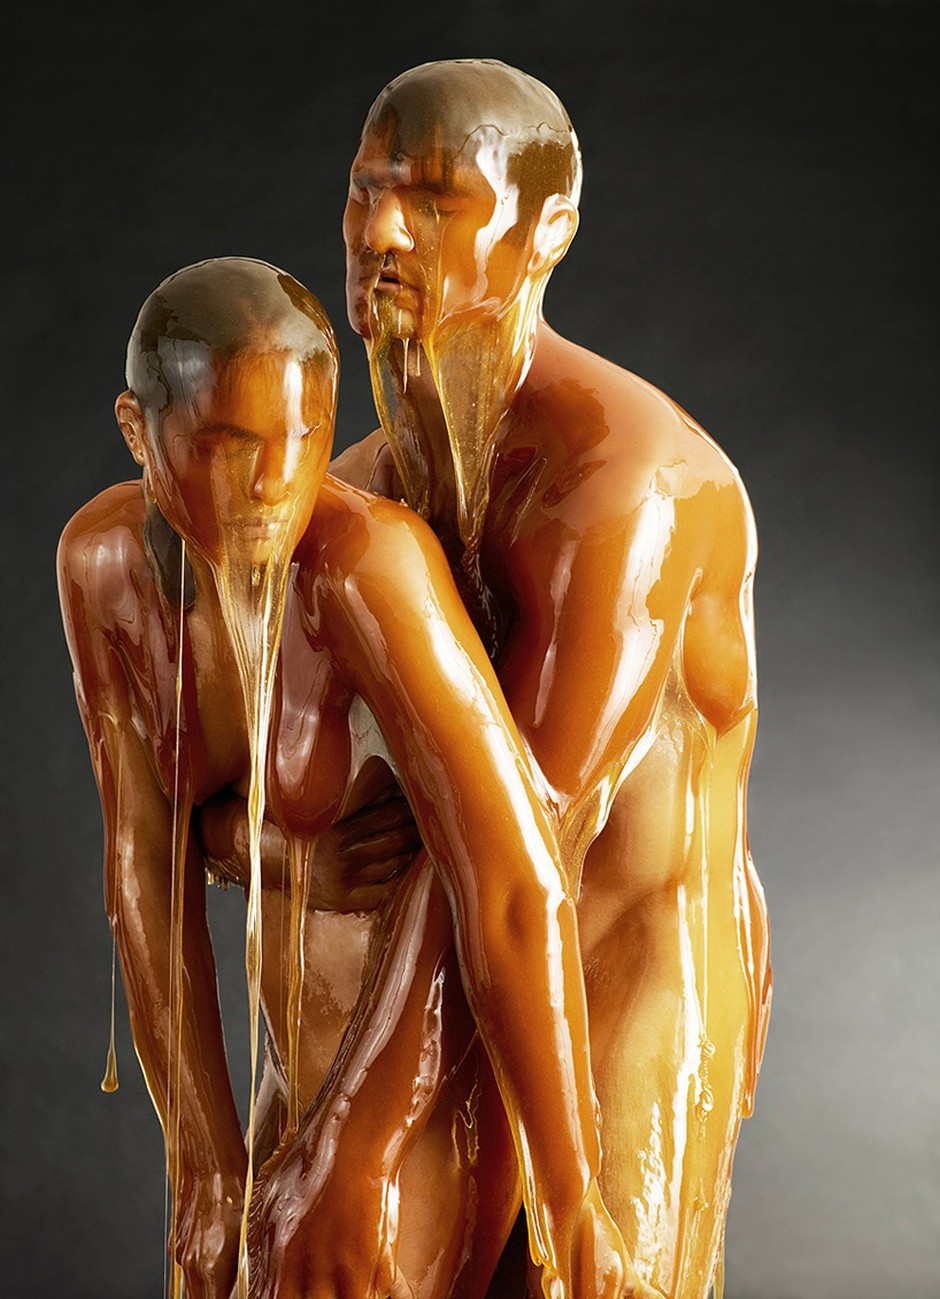 Blake-Little-photography-human-body-honey-preservation-4459